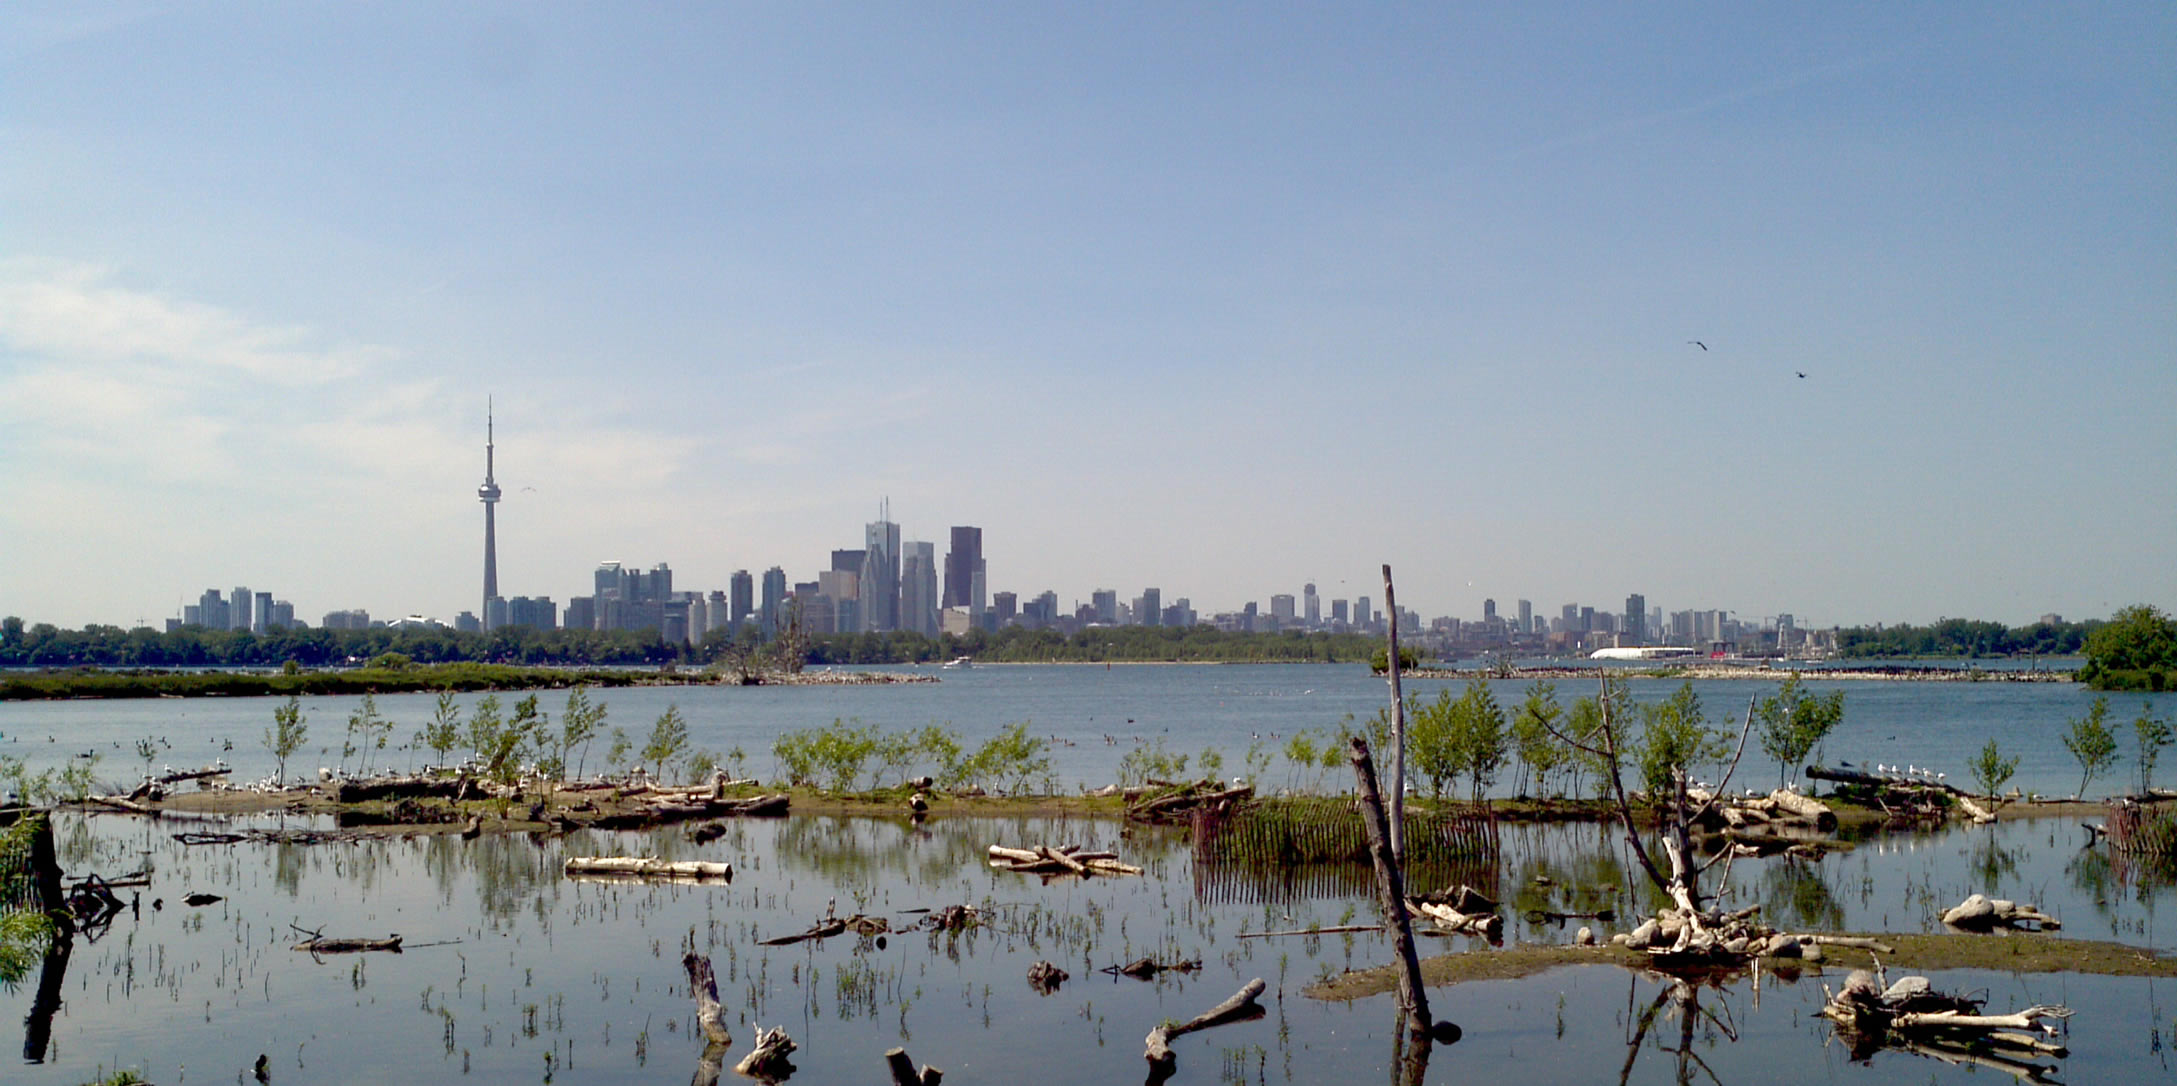 A view of Toronto across a newly constructed wetland at Tommy Thompson Park.